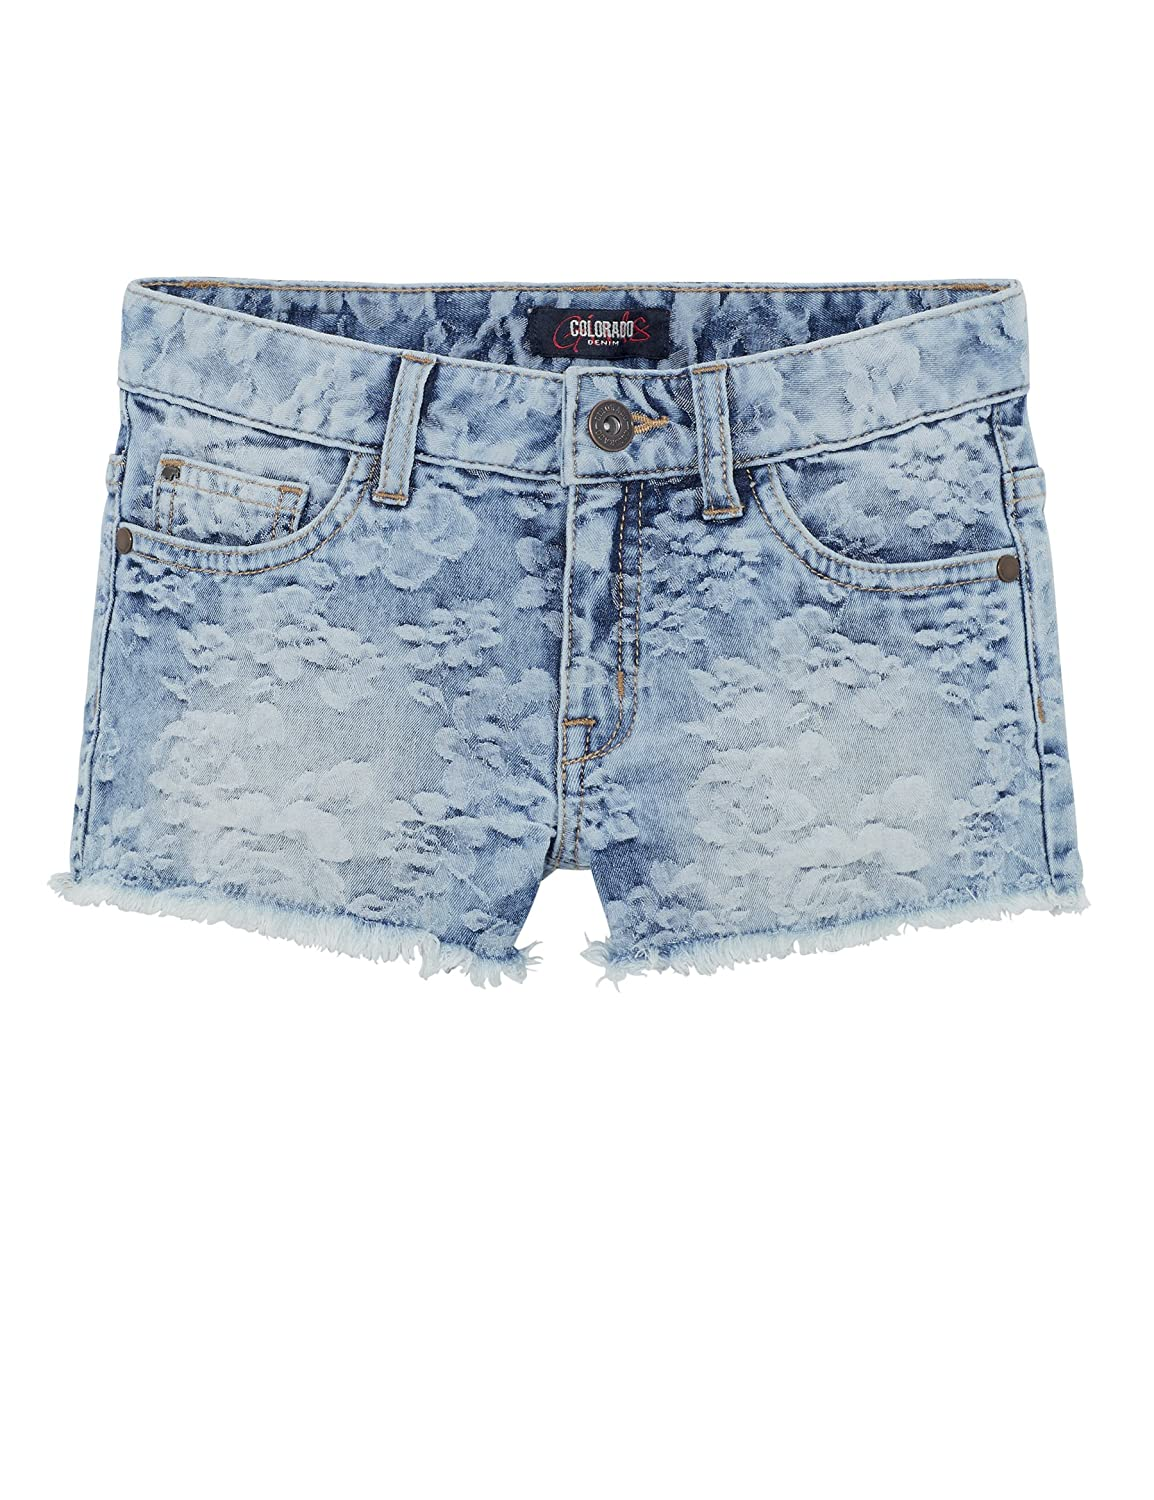 Colorado Denim Girl's Elfi Shorts 12694-007